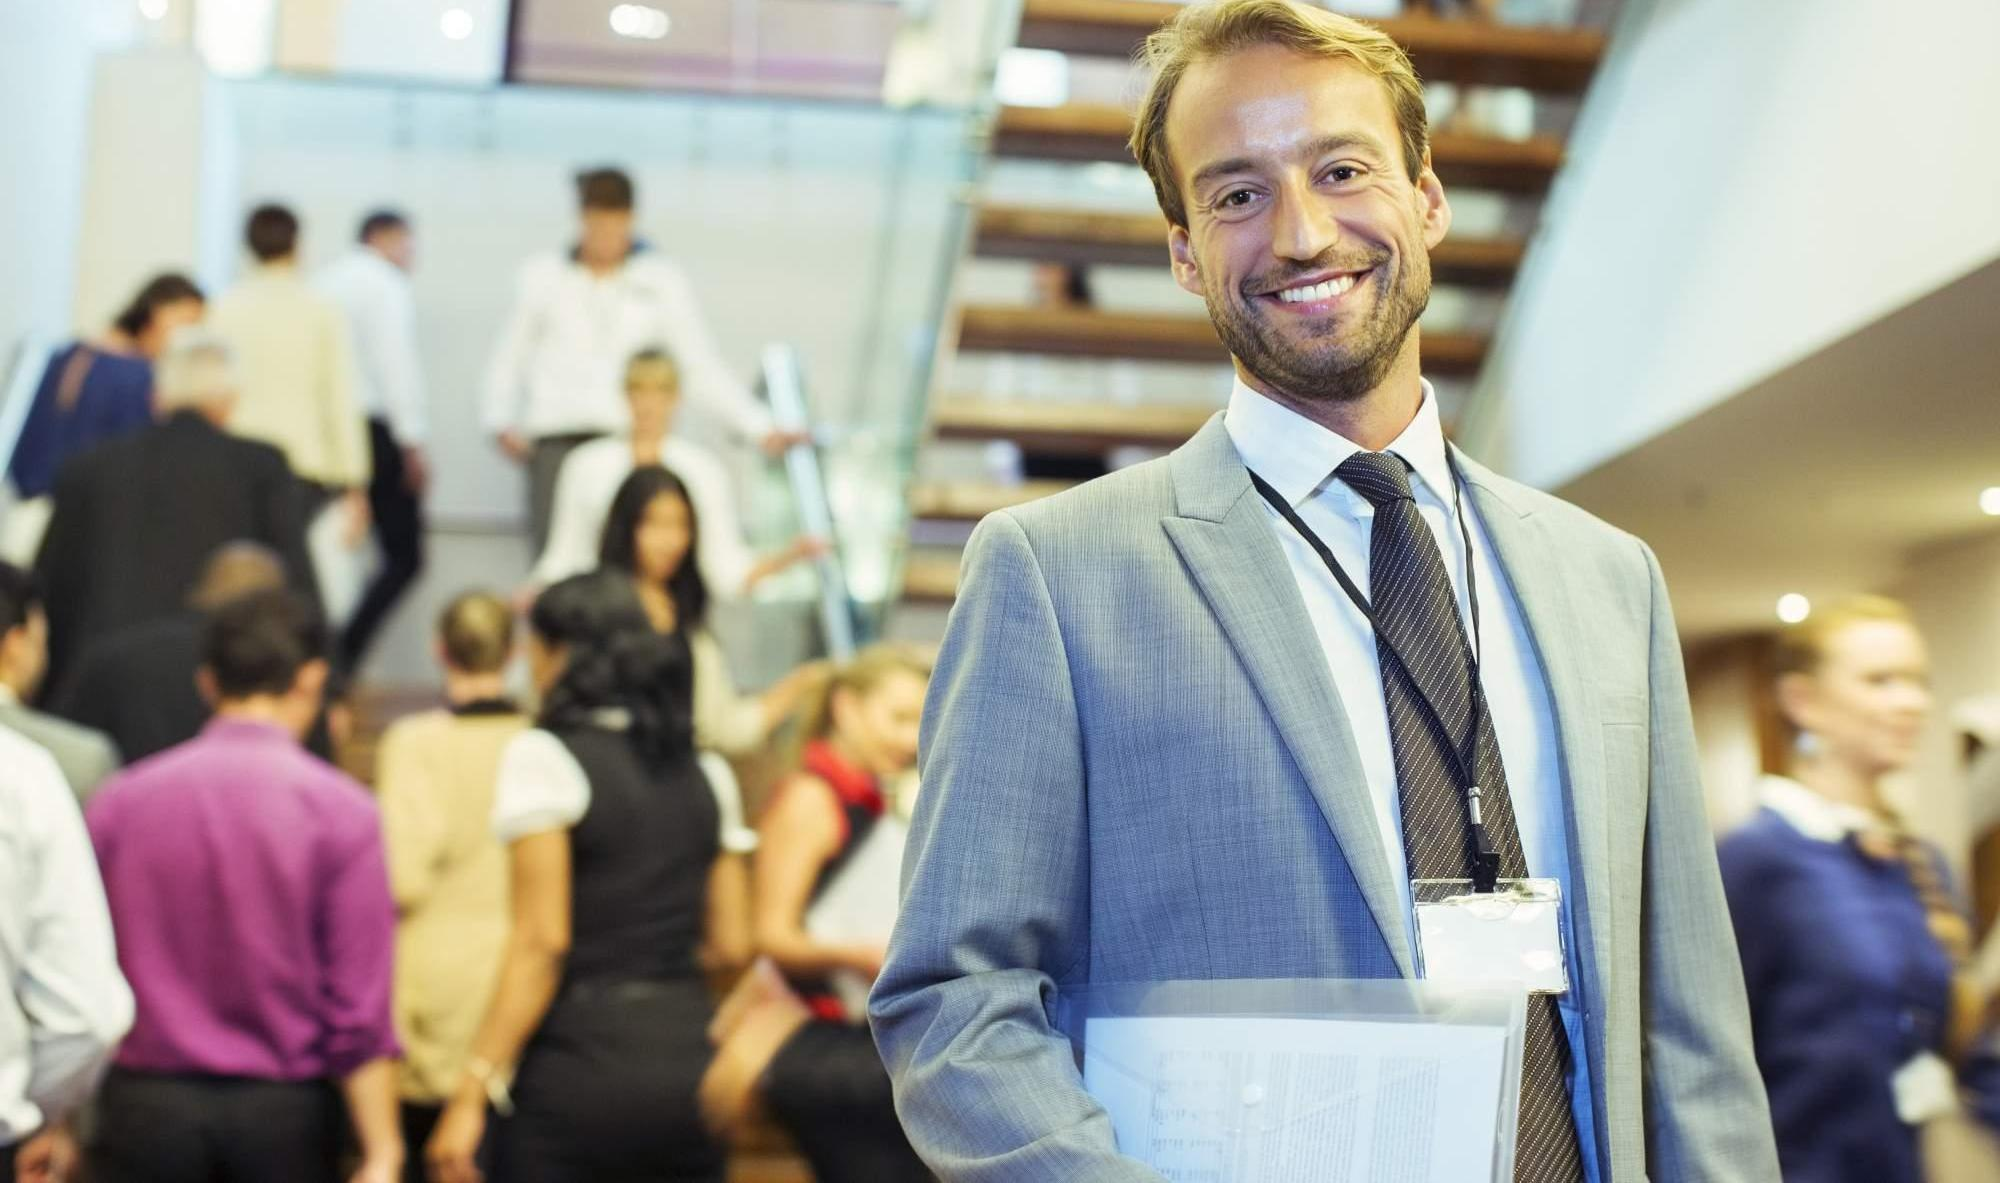 Portrait of smiling businessman standing in crowded lobby of conference center